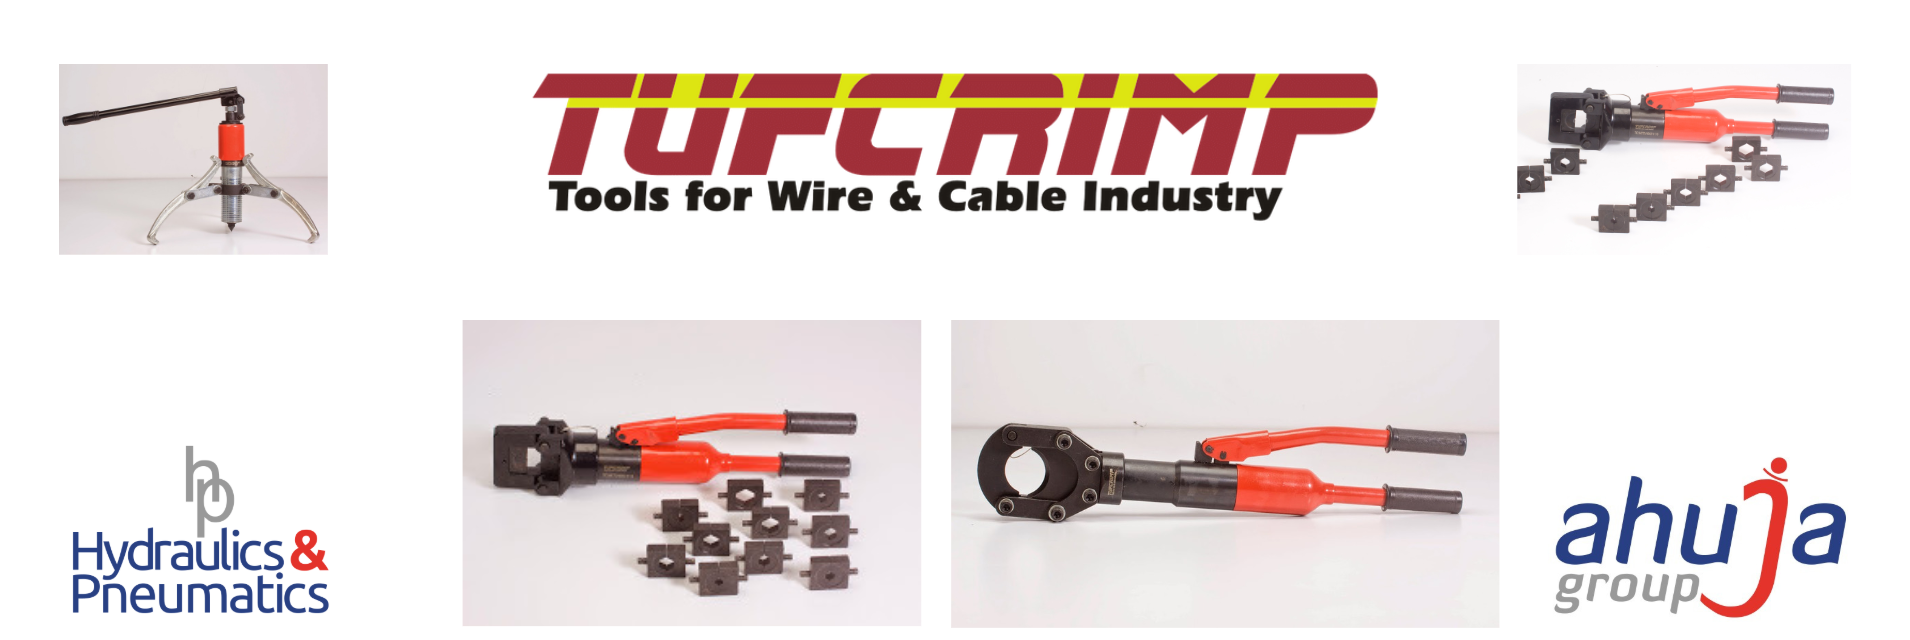 TufCrimp Tools